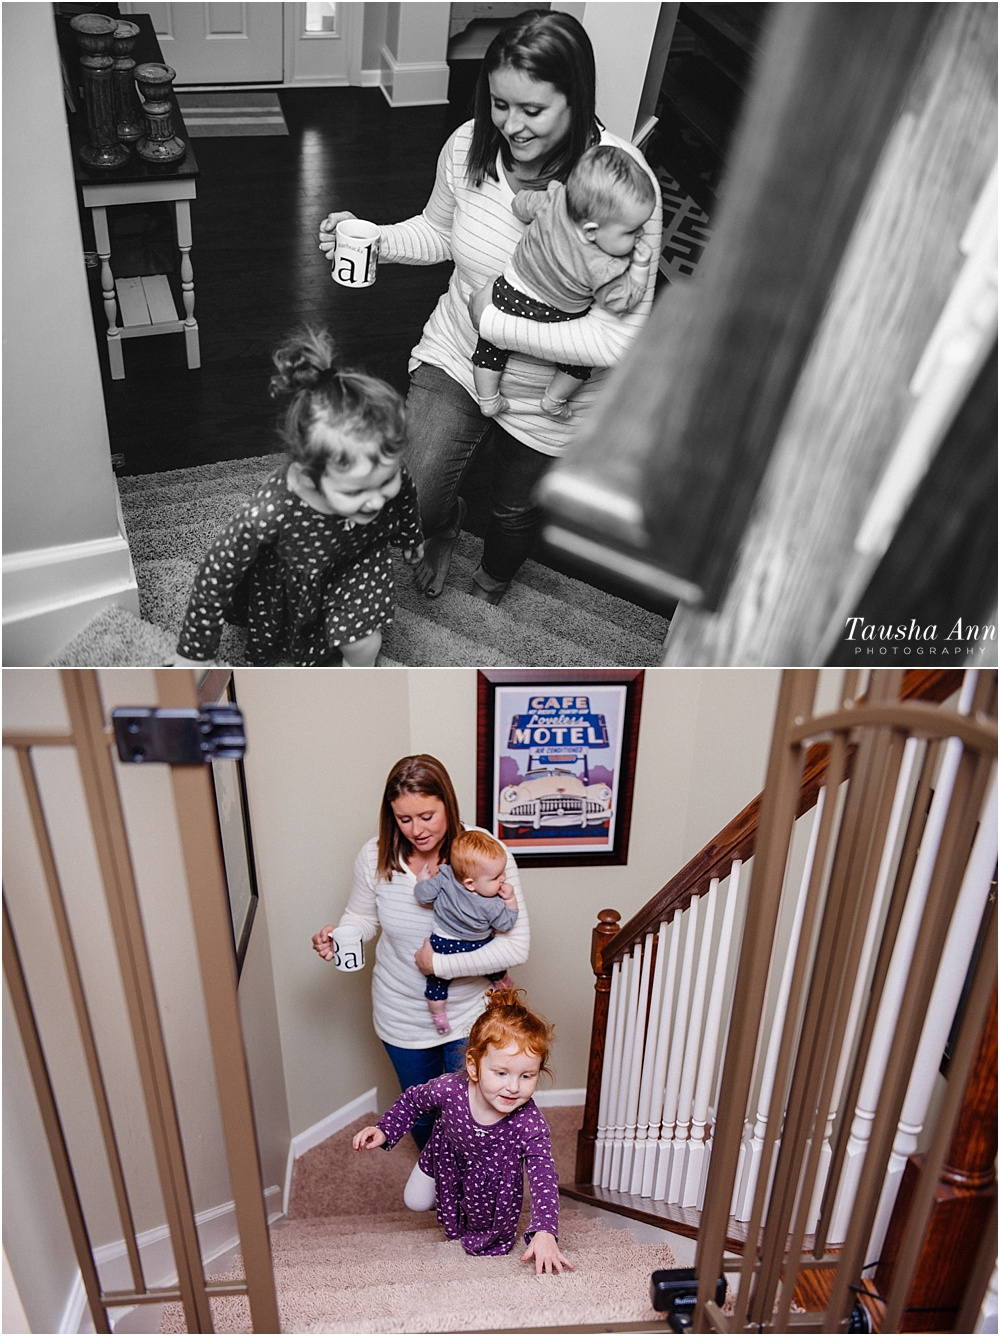 Swan_Life_at_Sunset_Tausha_Ann_Photography_Lifestyle_Sunset_Session_Nashville_Family_Photographer_Going_Upstairs_Coffee